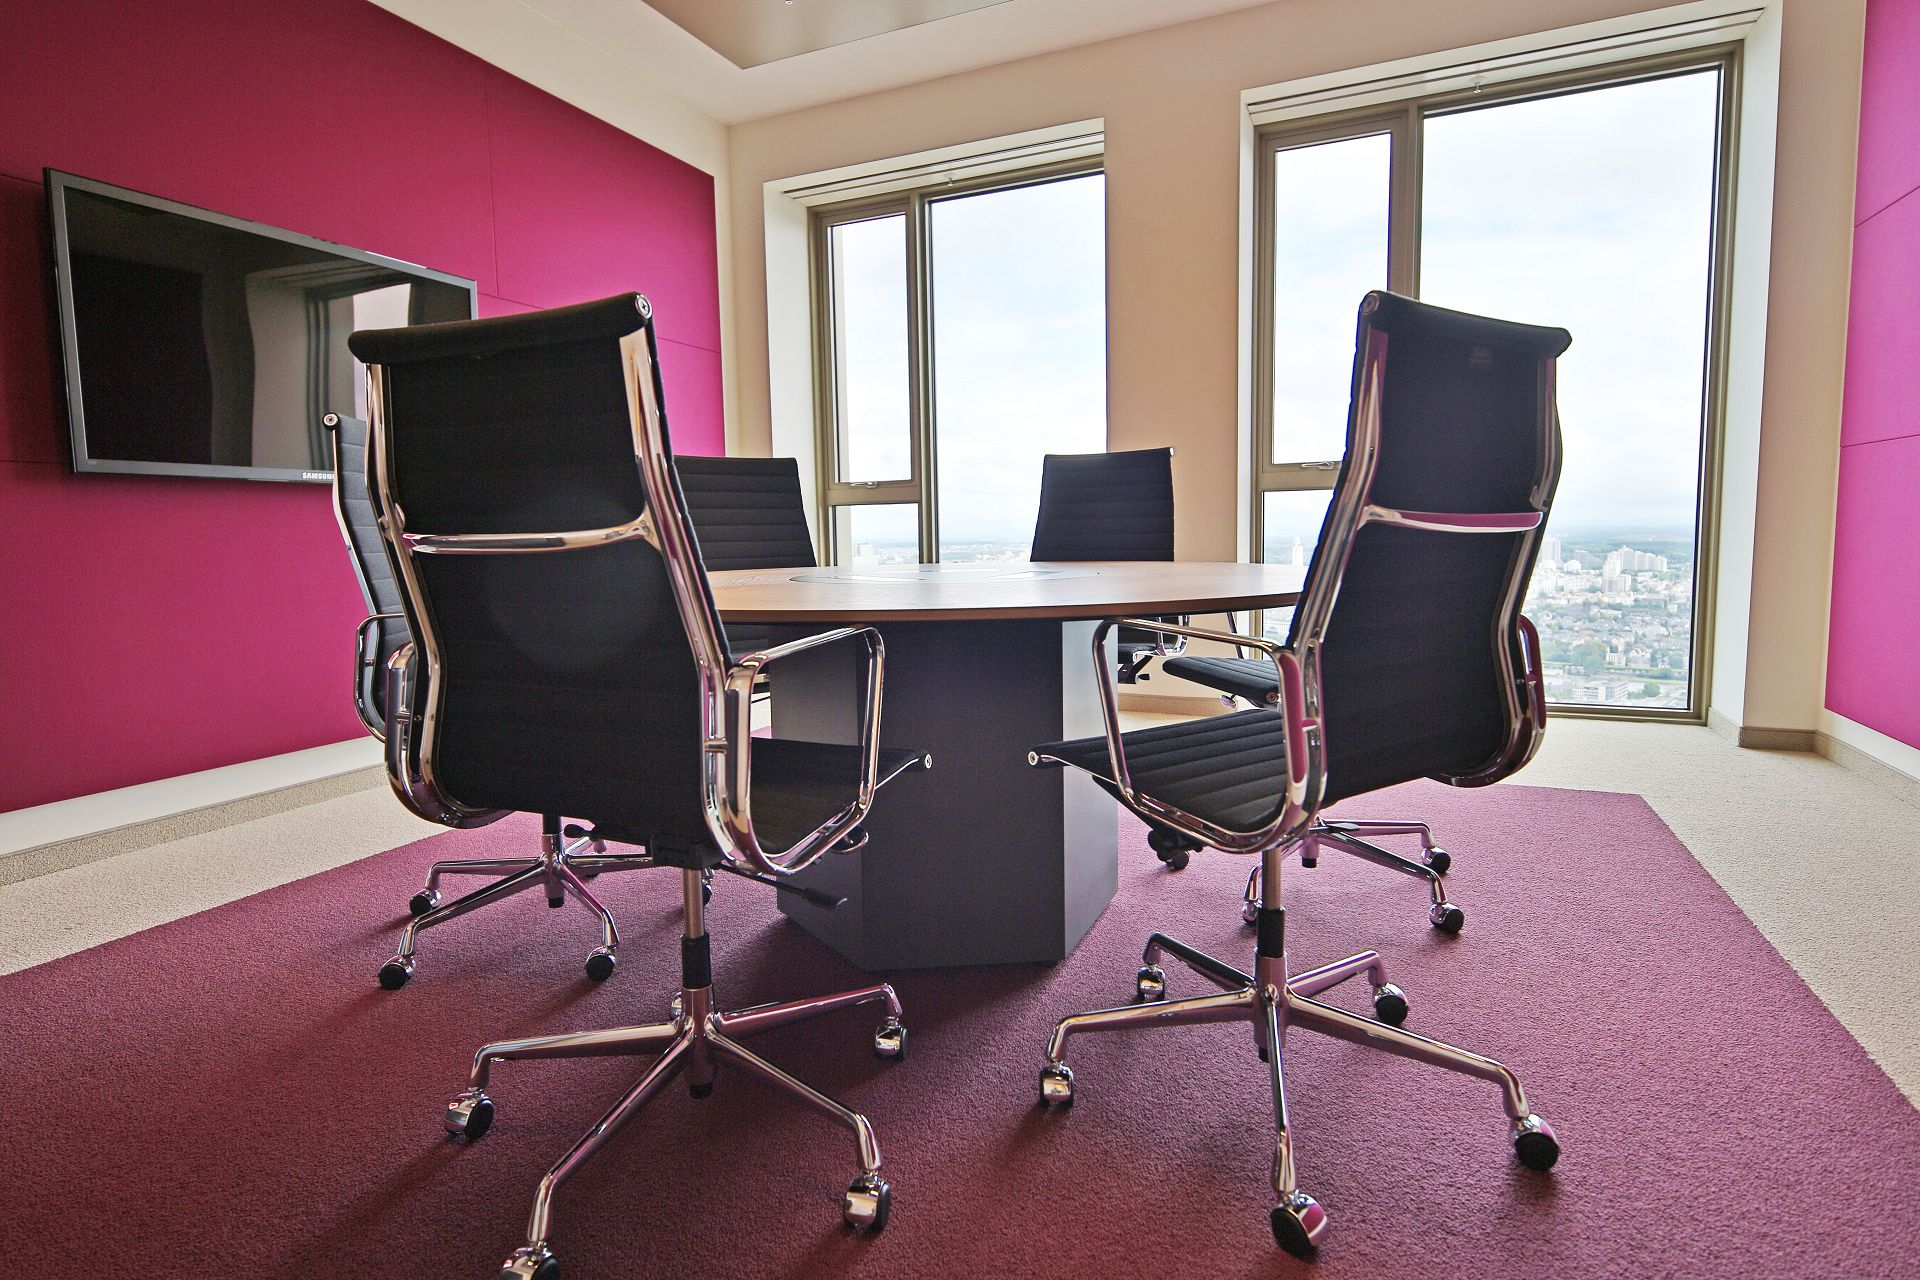 Meeting Room im Office Tower in Frankfurt am Main